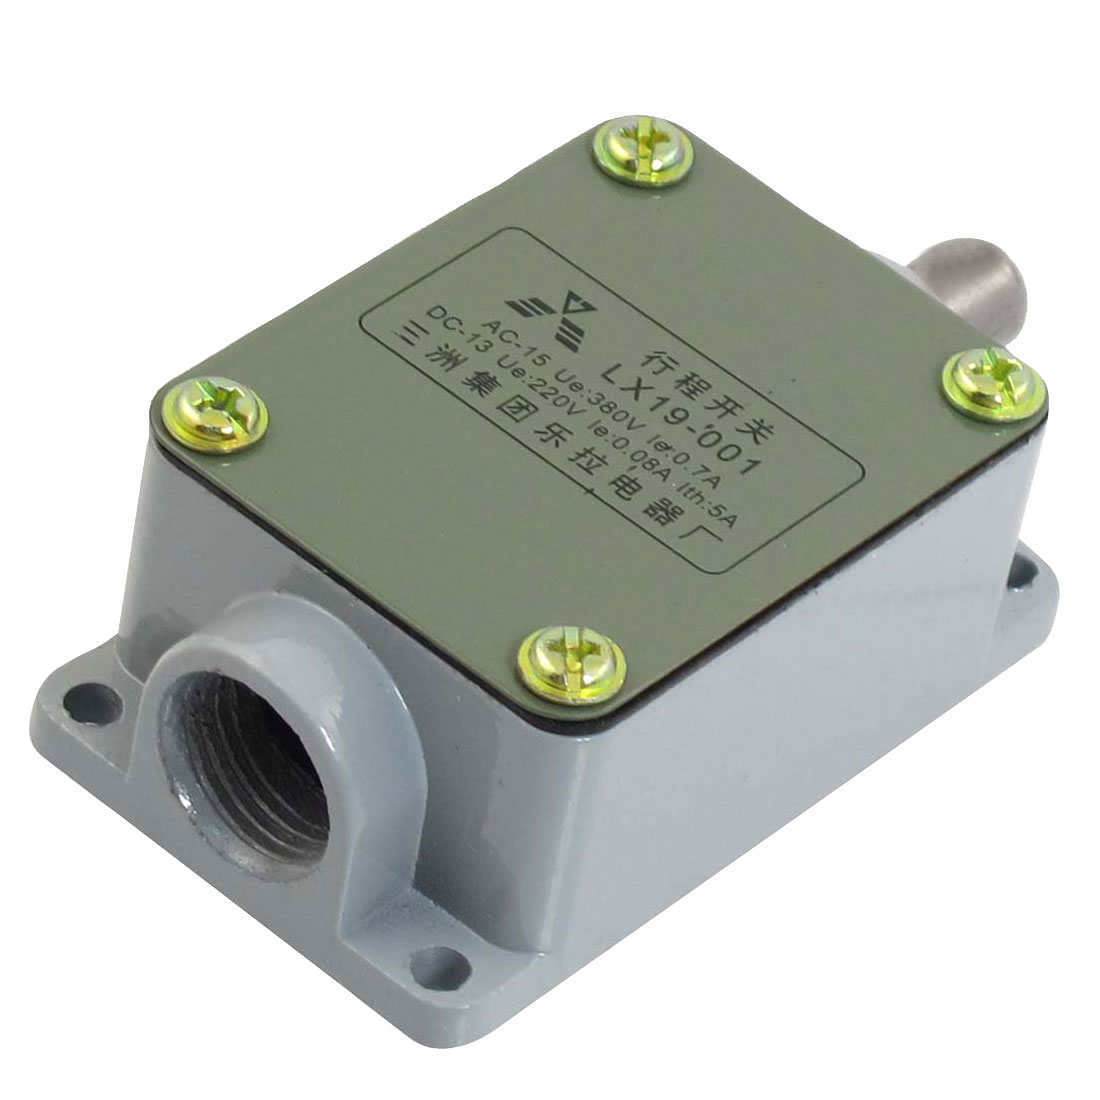 0.08A 220VDC 0.7A 380VAC Momentary 1NO 1NC SPDT Push Plunger Limit Switch LX19-001